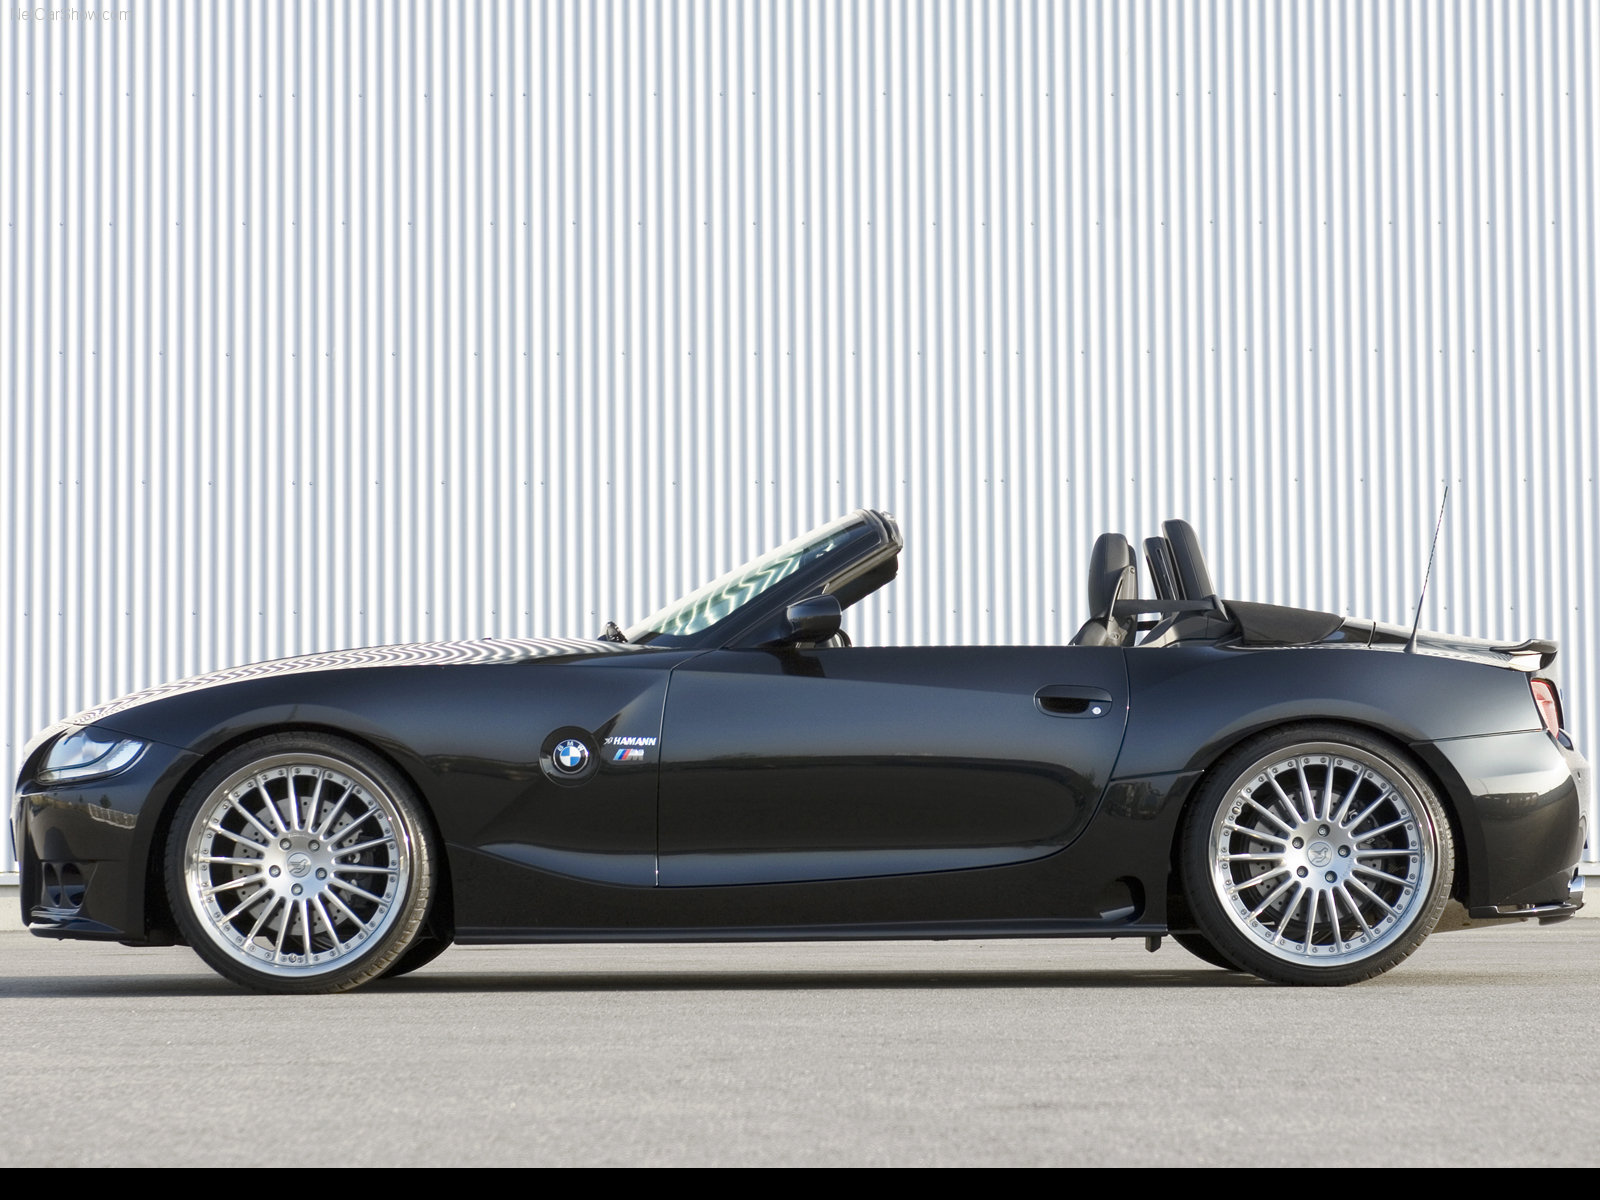 Hamann Bmw Z4 M Roadster Photos Photogallery With 8 Pics Carsbase Com